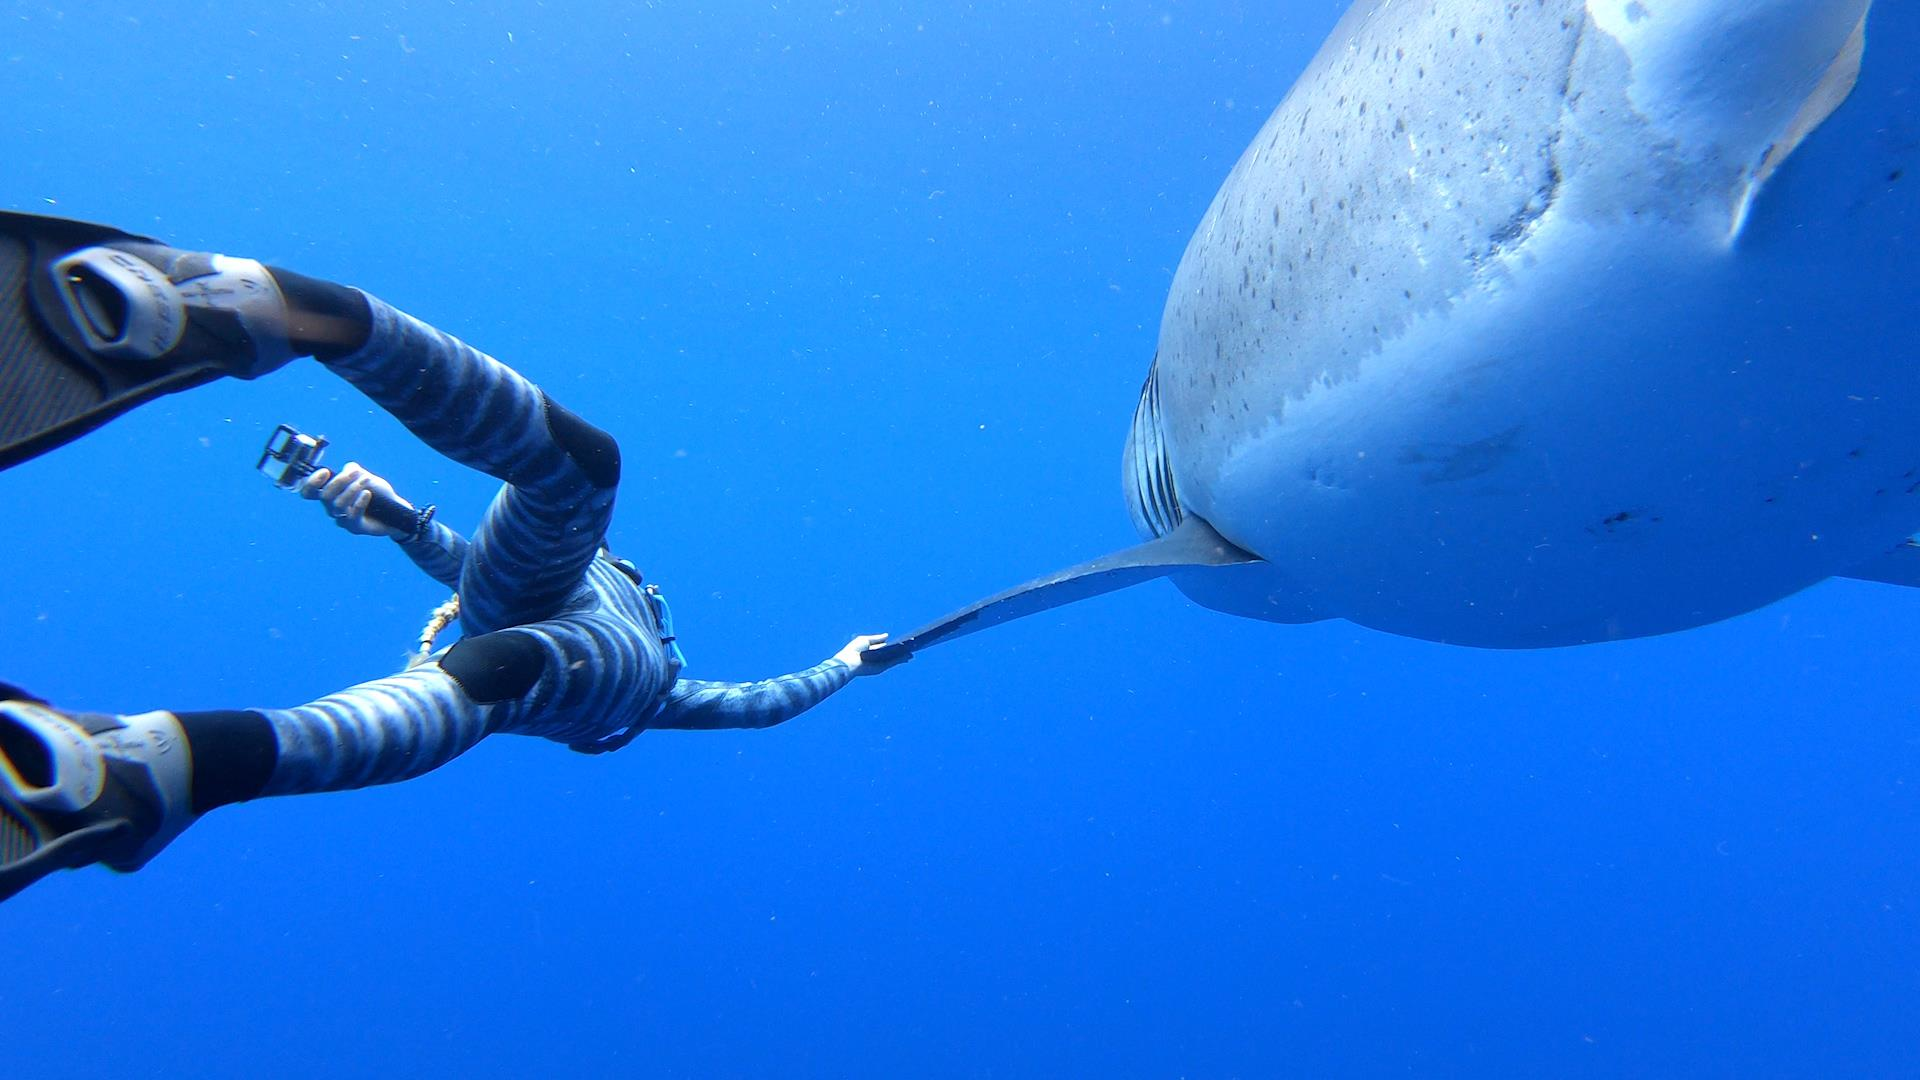 Hawaii divers swim with one of the biggest great white sharks